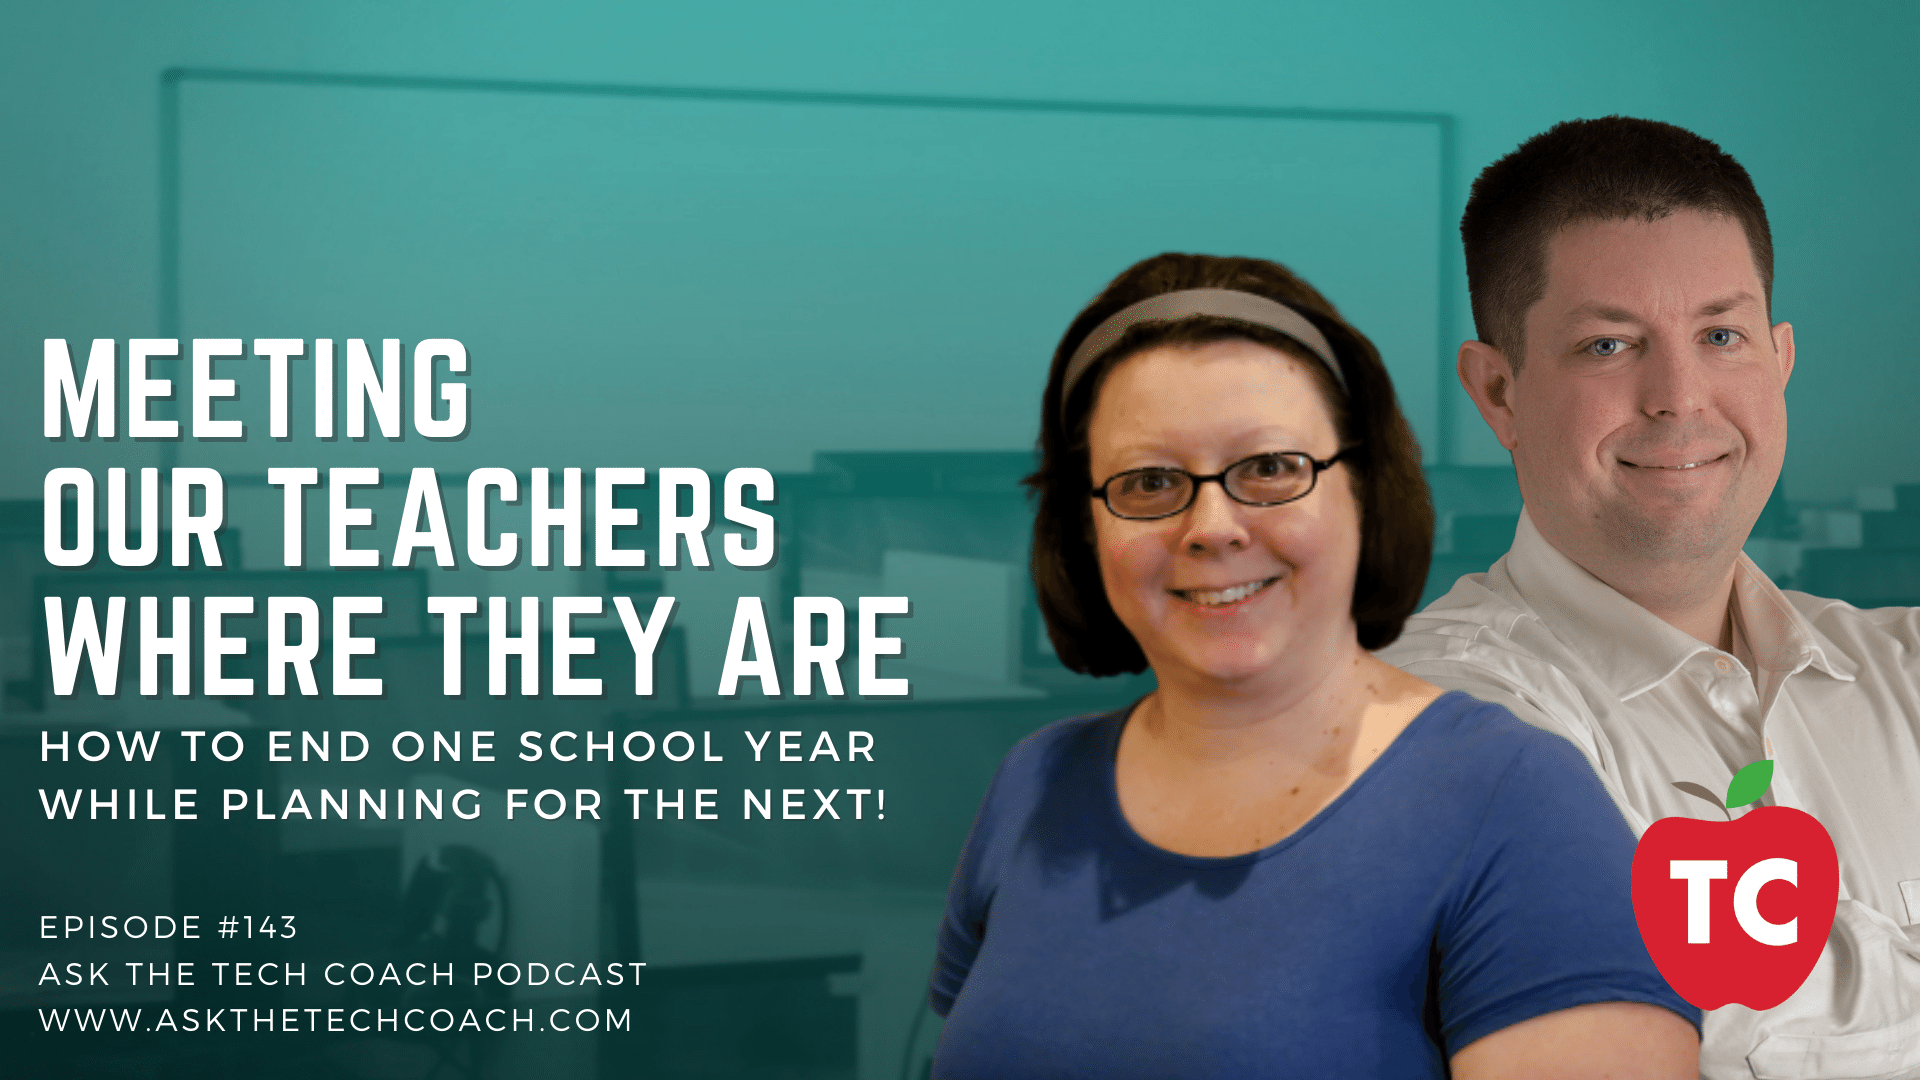 Podcast: Meeting Teachers Where They Are